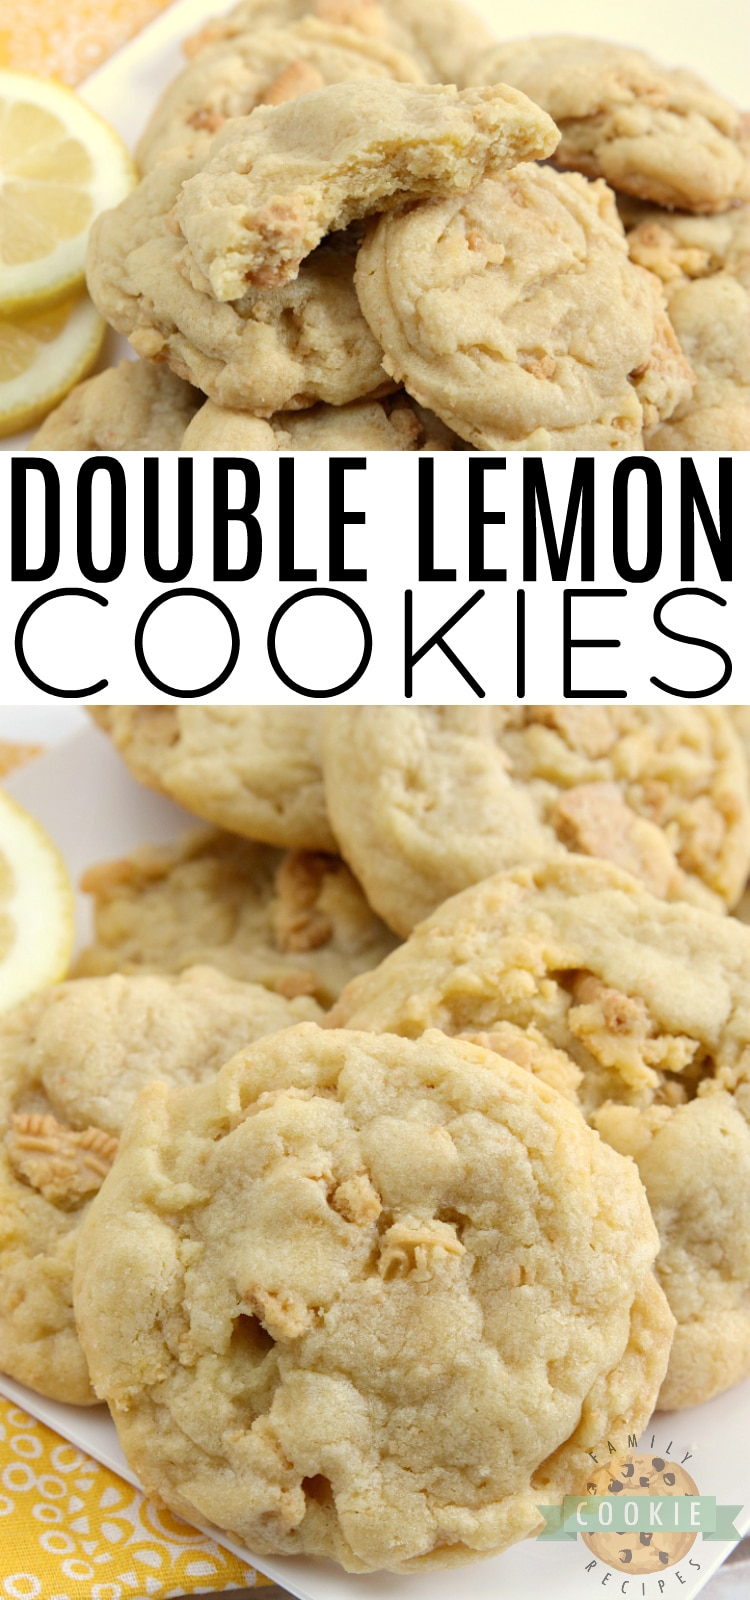 Double Lemon Cookies made with lemon pudding mix and crushed Lemon Oreos for lots of delicious lemon flavor! These cookies are soft, chewy and super easy to make too!